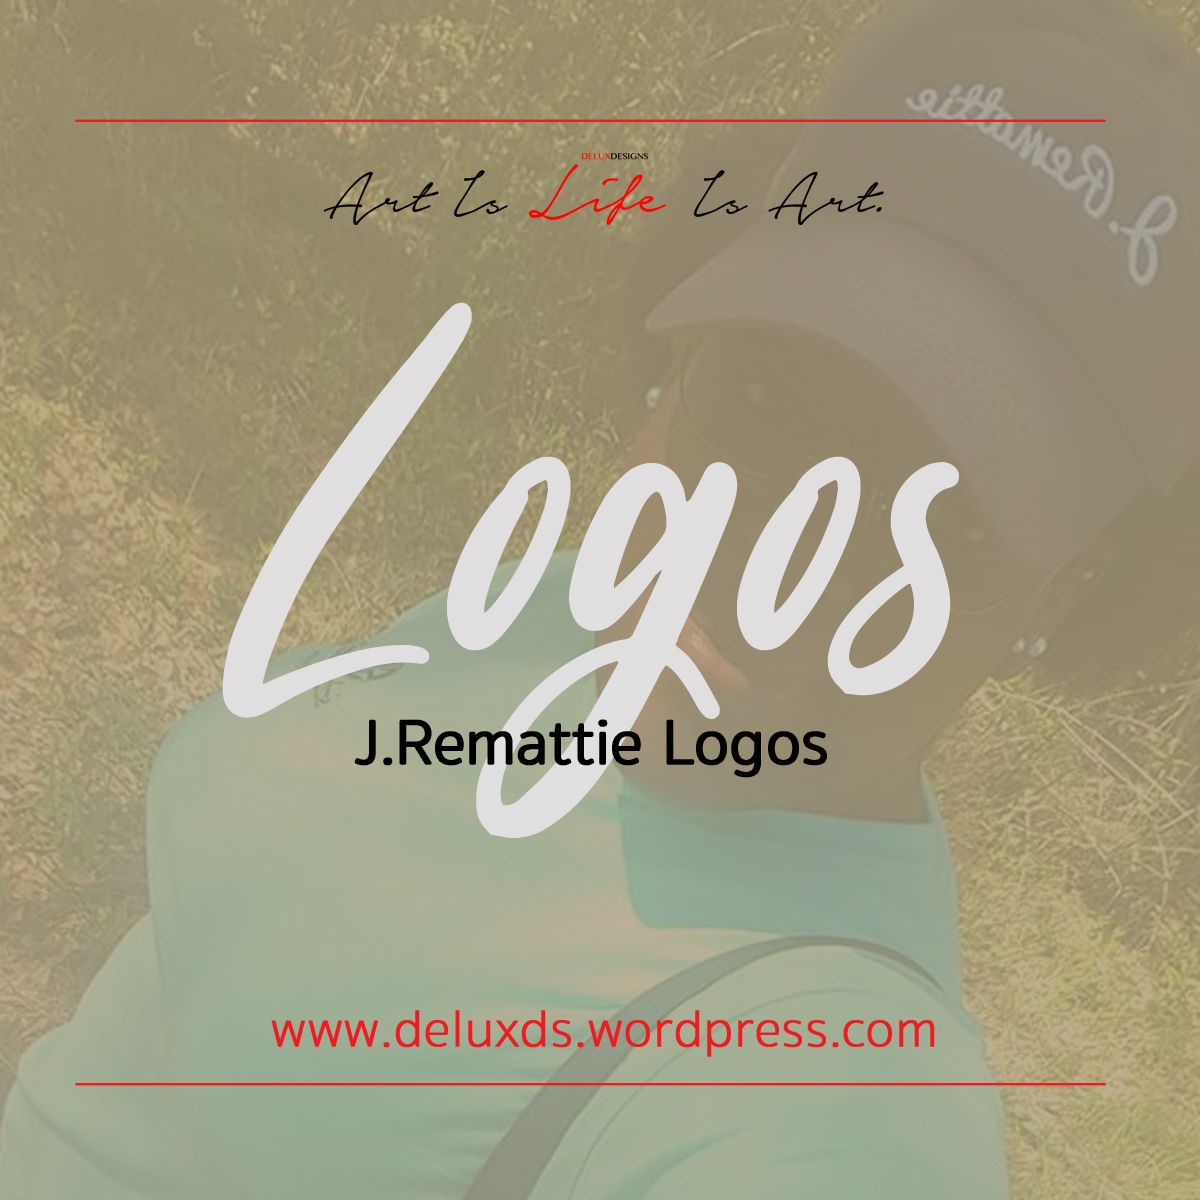 J.Remattie Logos